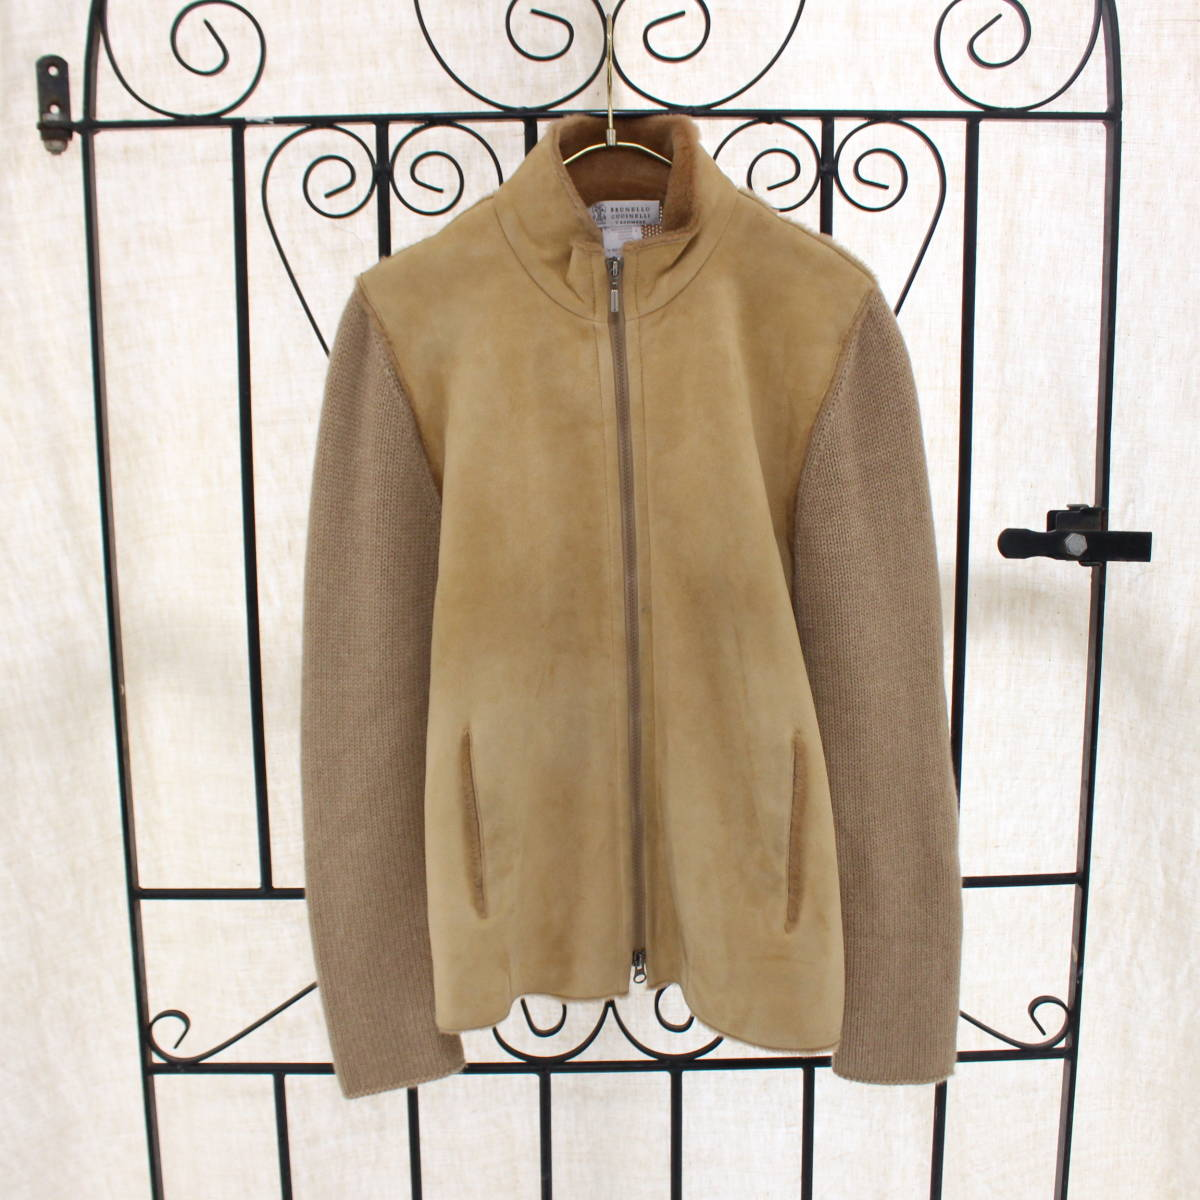 BRUNELLO CUCINELLI CASHMERE MOUTON JACKET MADE IN ITALY/ブルネロクチネリカシミヤムートンジャケット_画像1